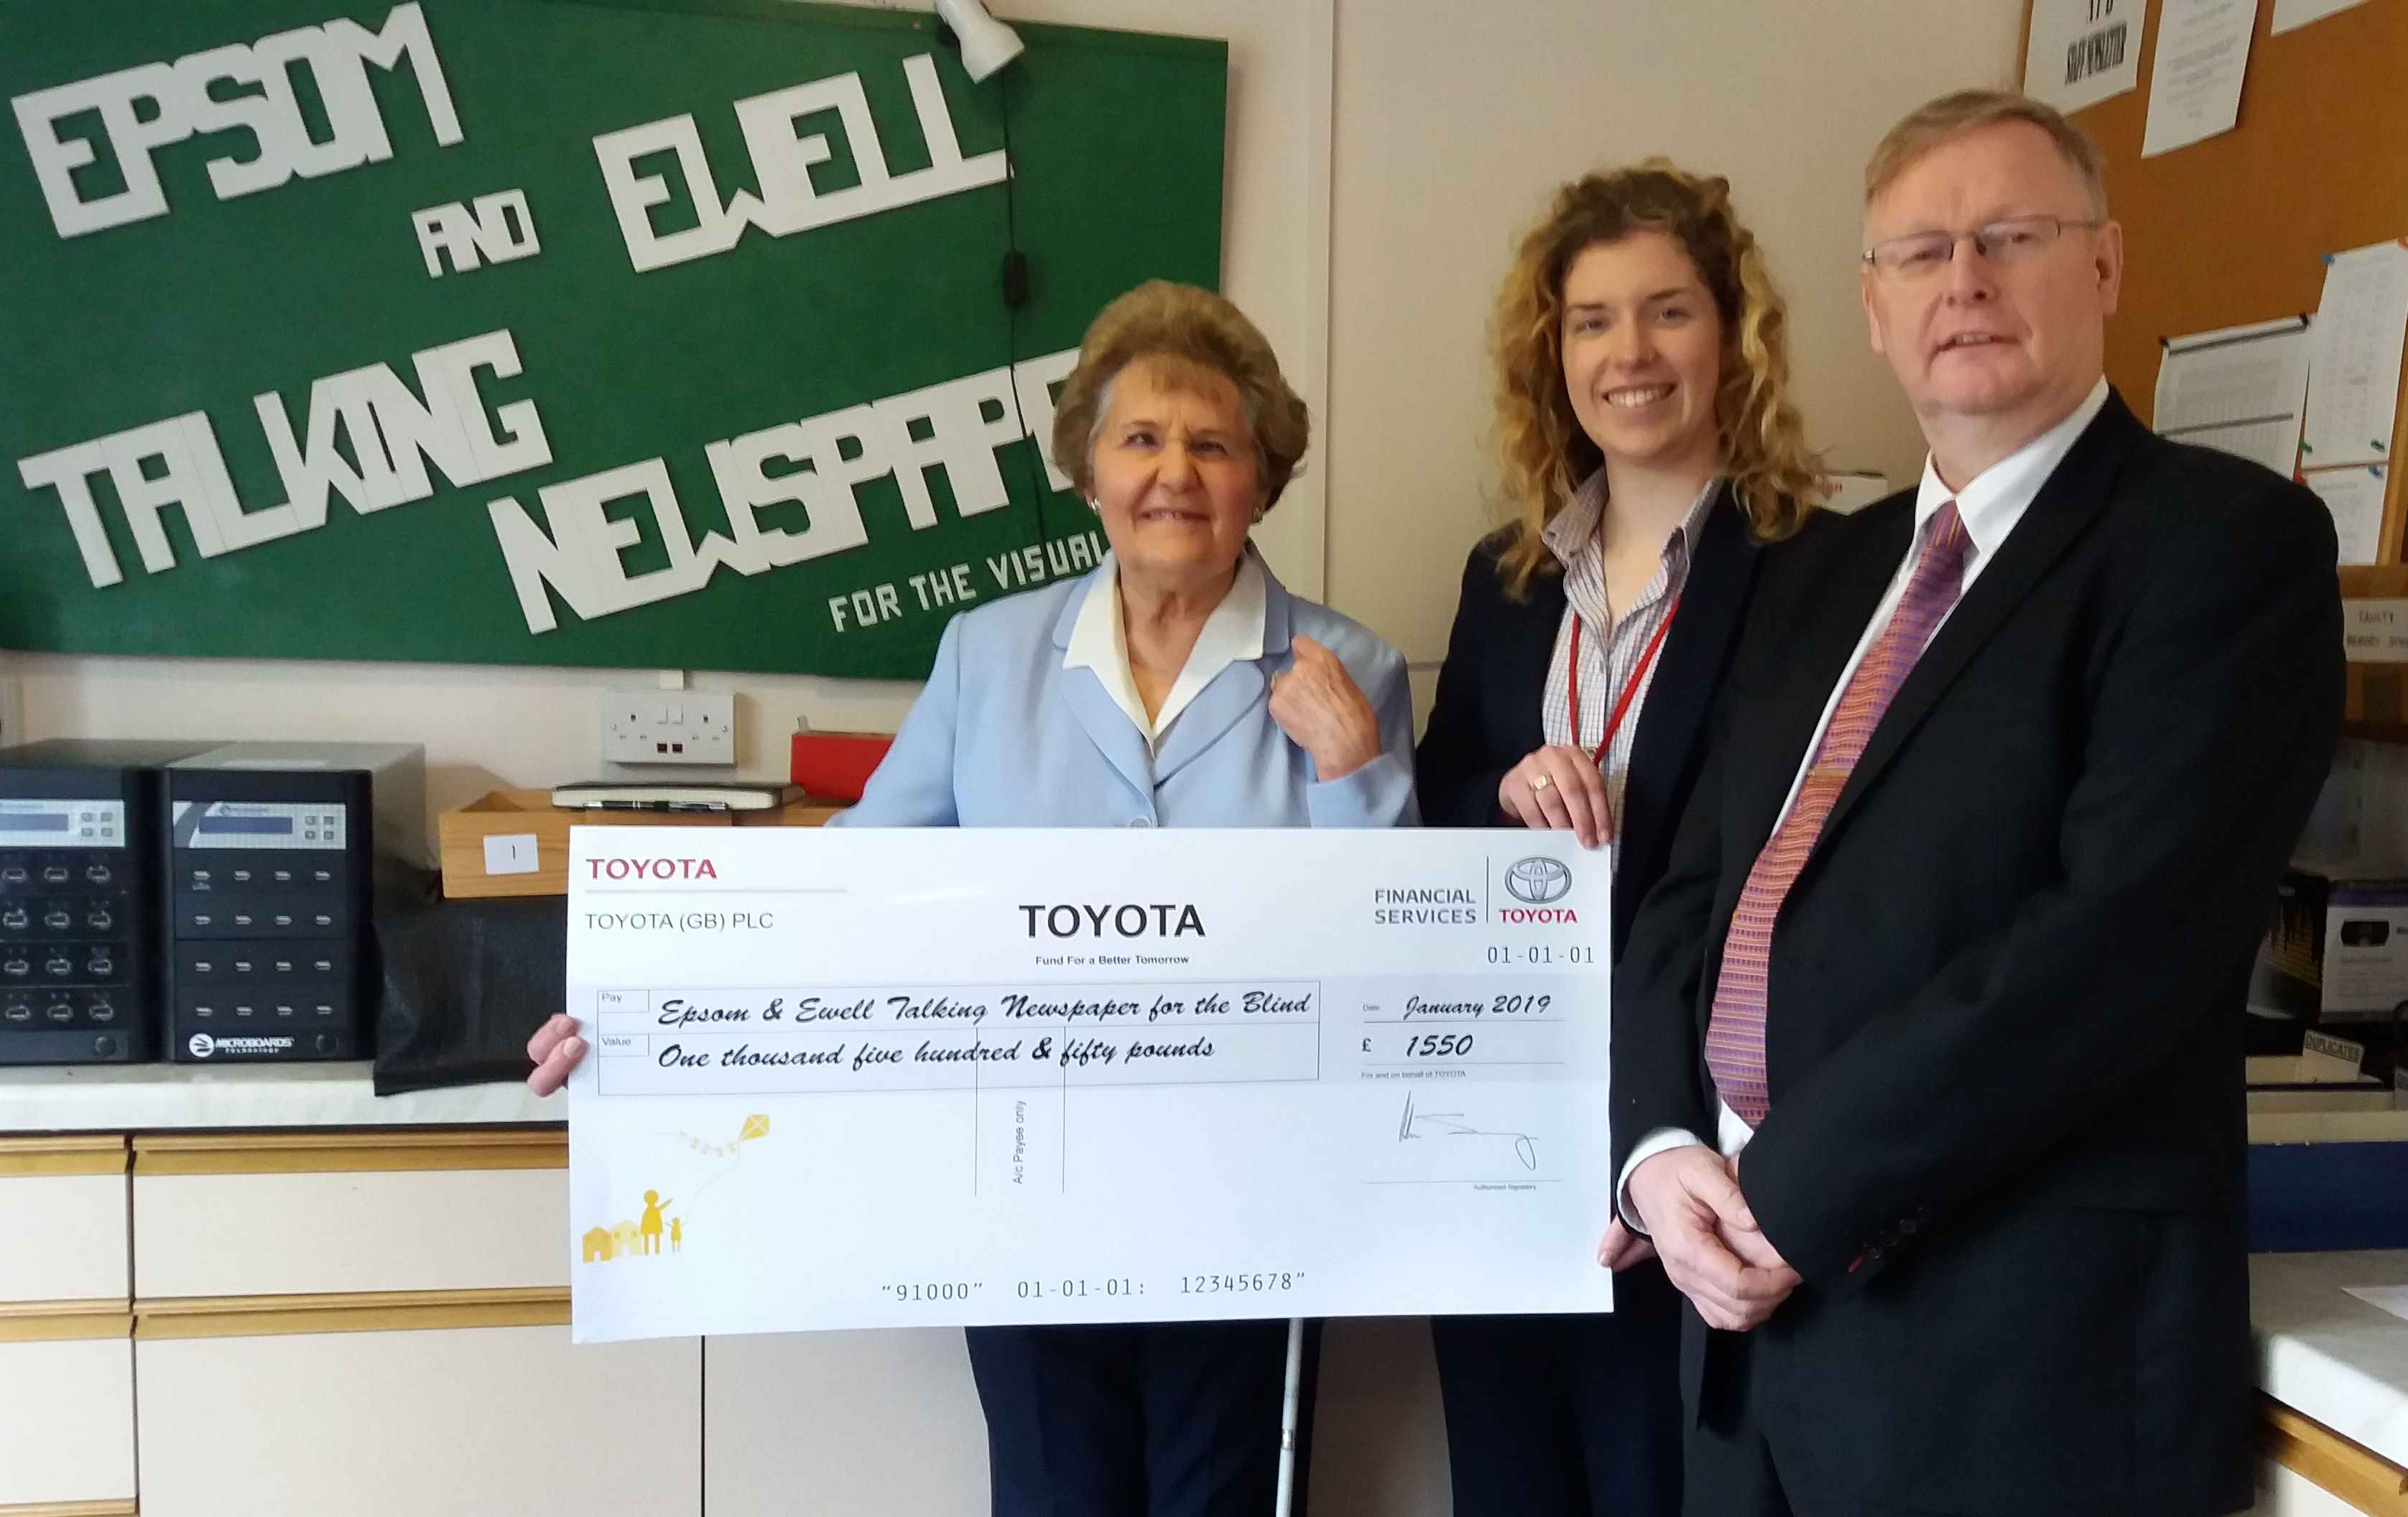 Donation cheque being presented by Toyota to the EETN